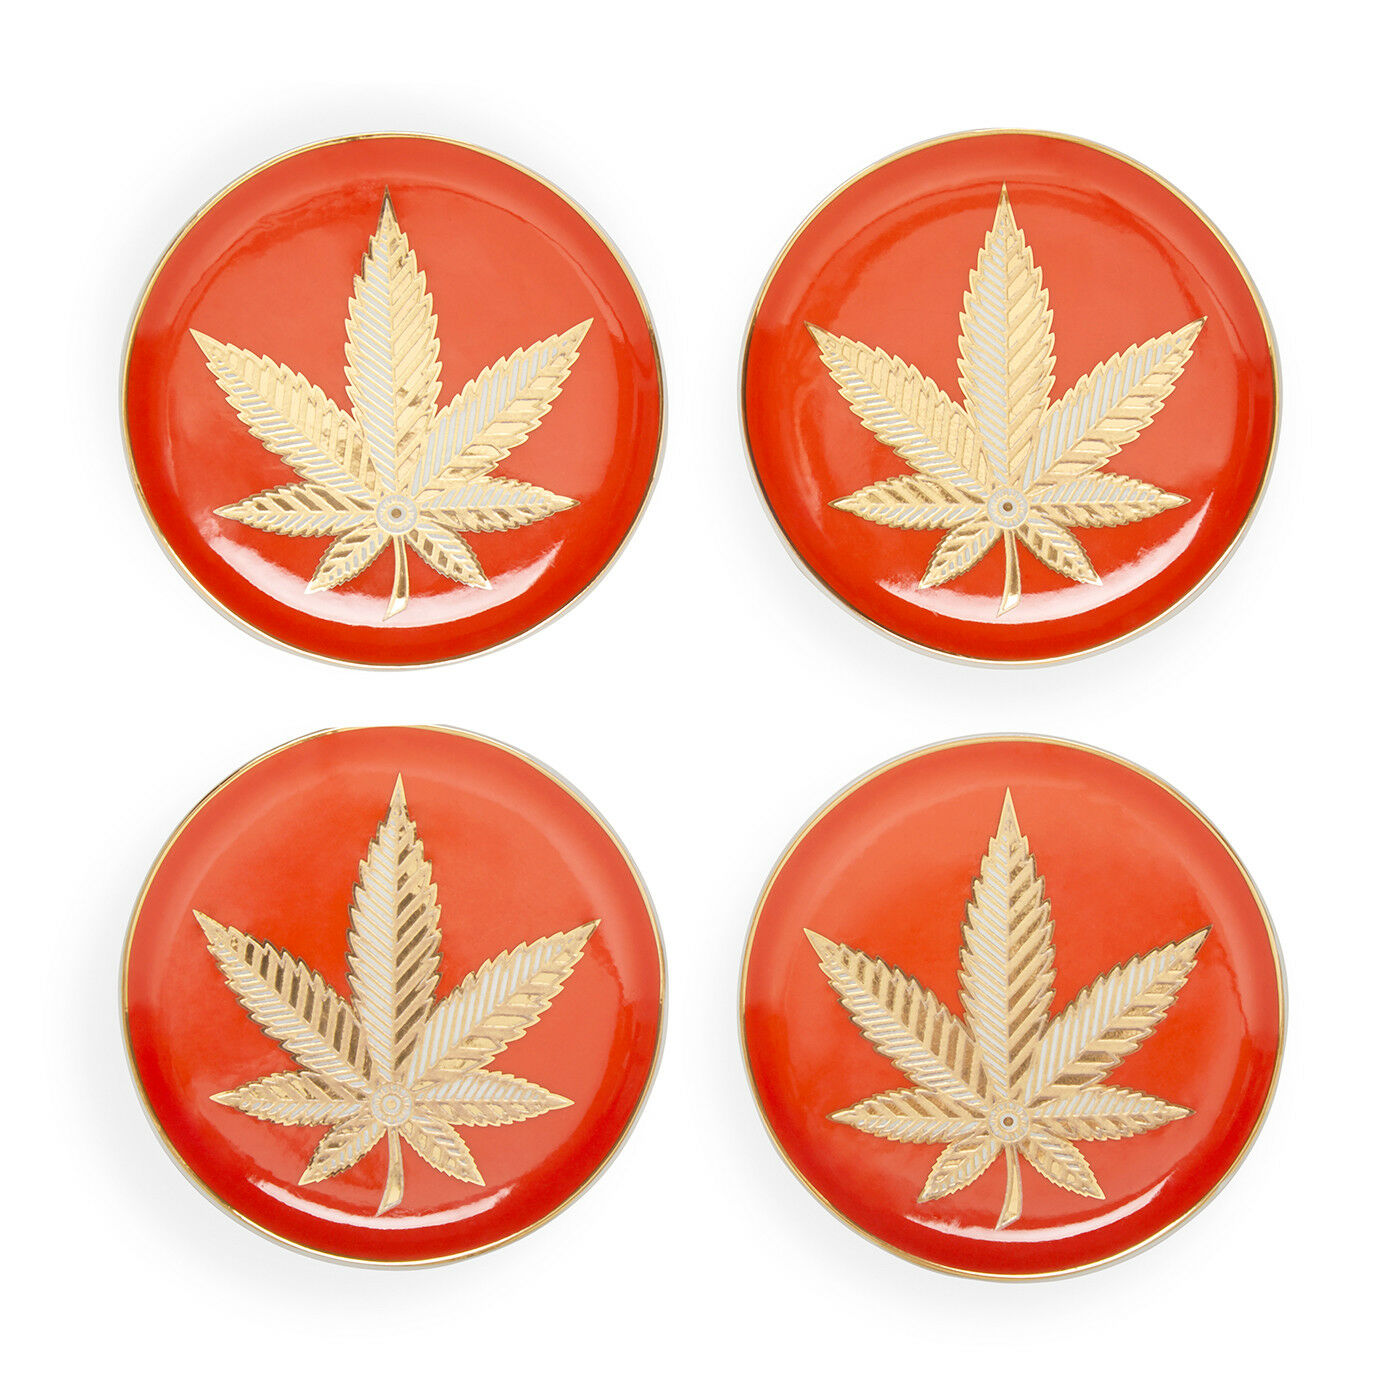 Jonathan Adler - Coaster Set - Hashish